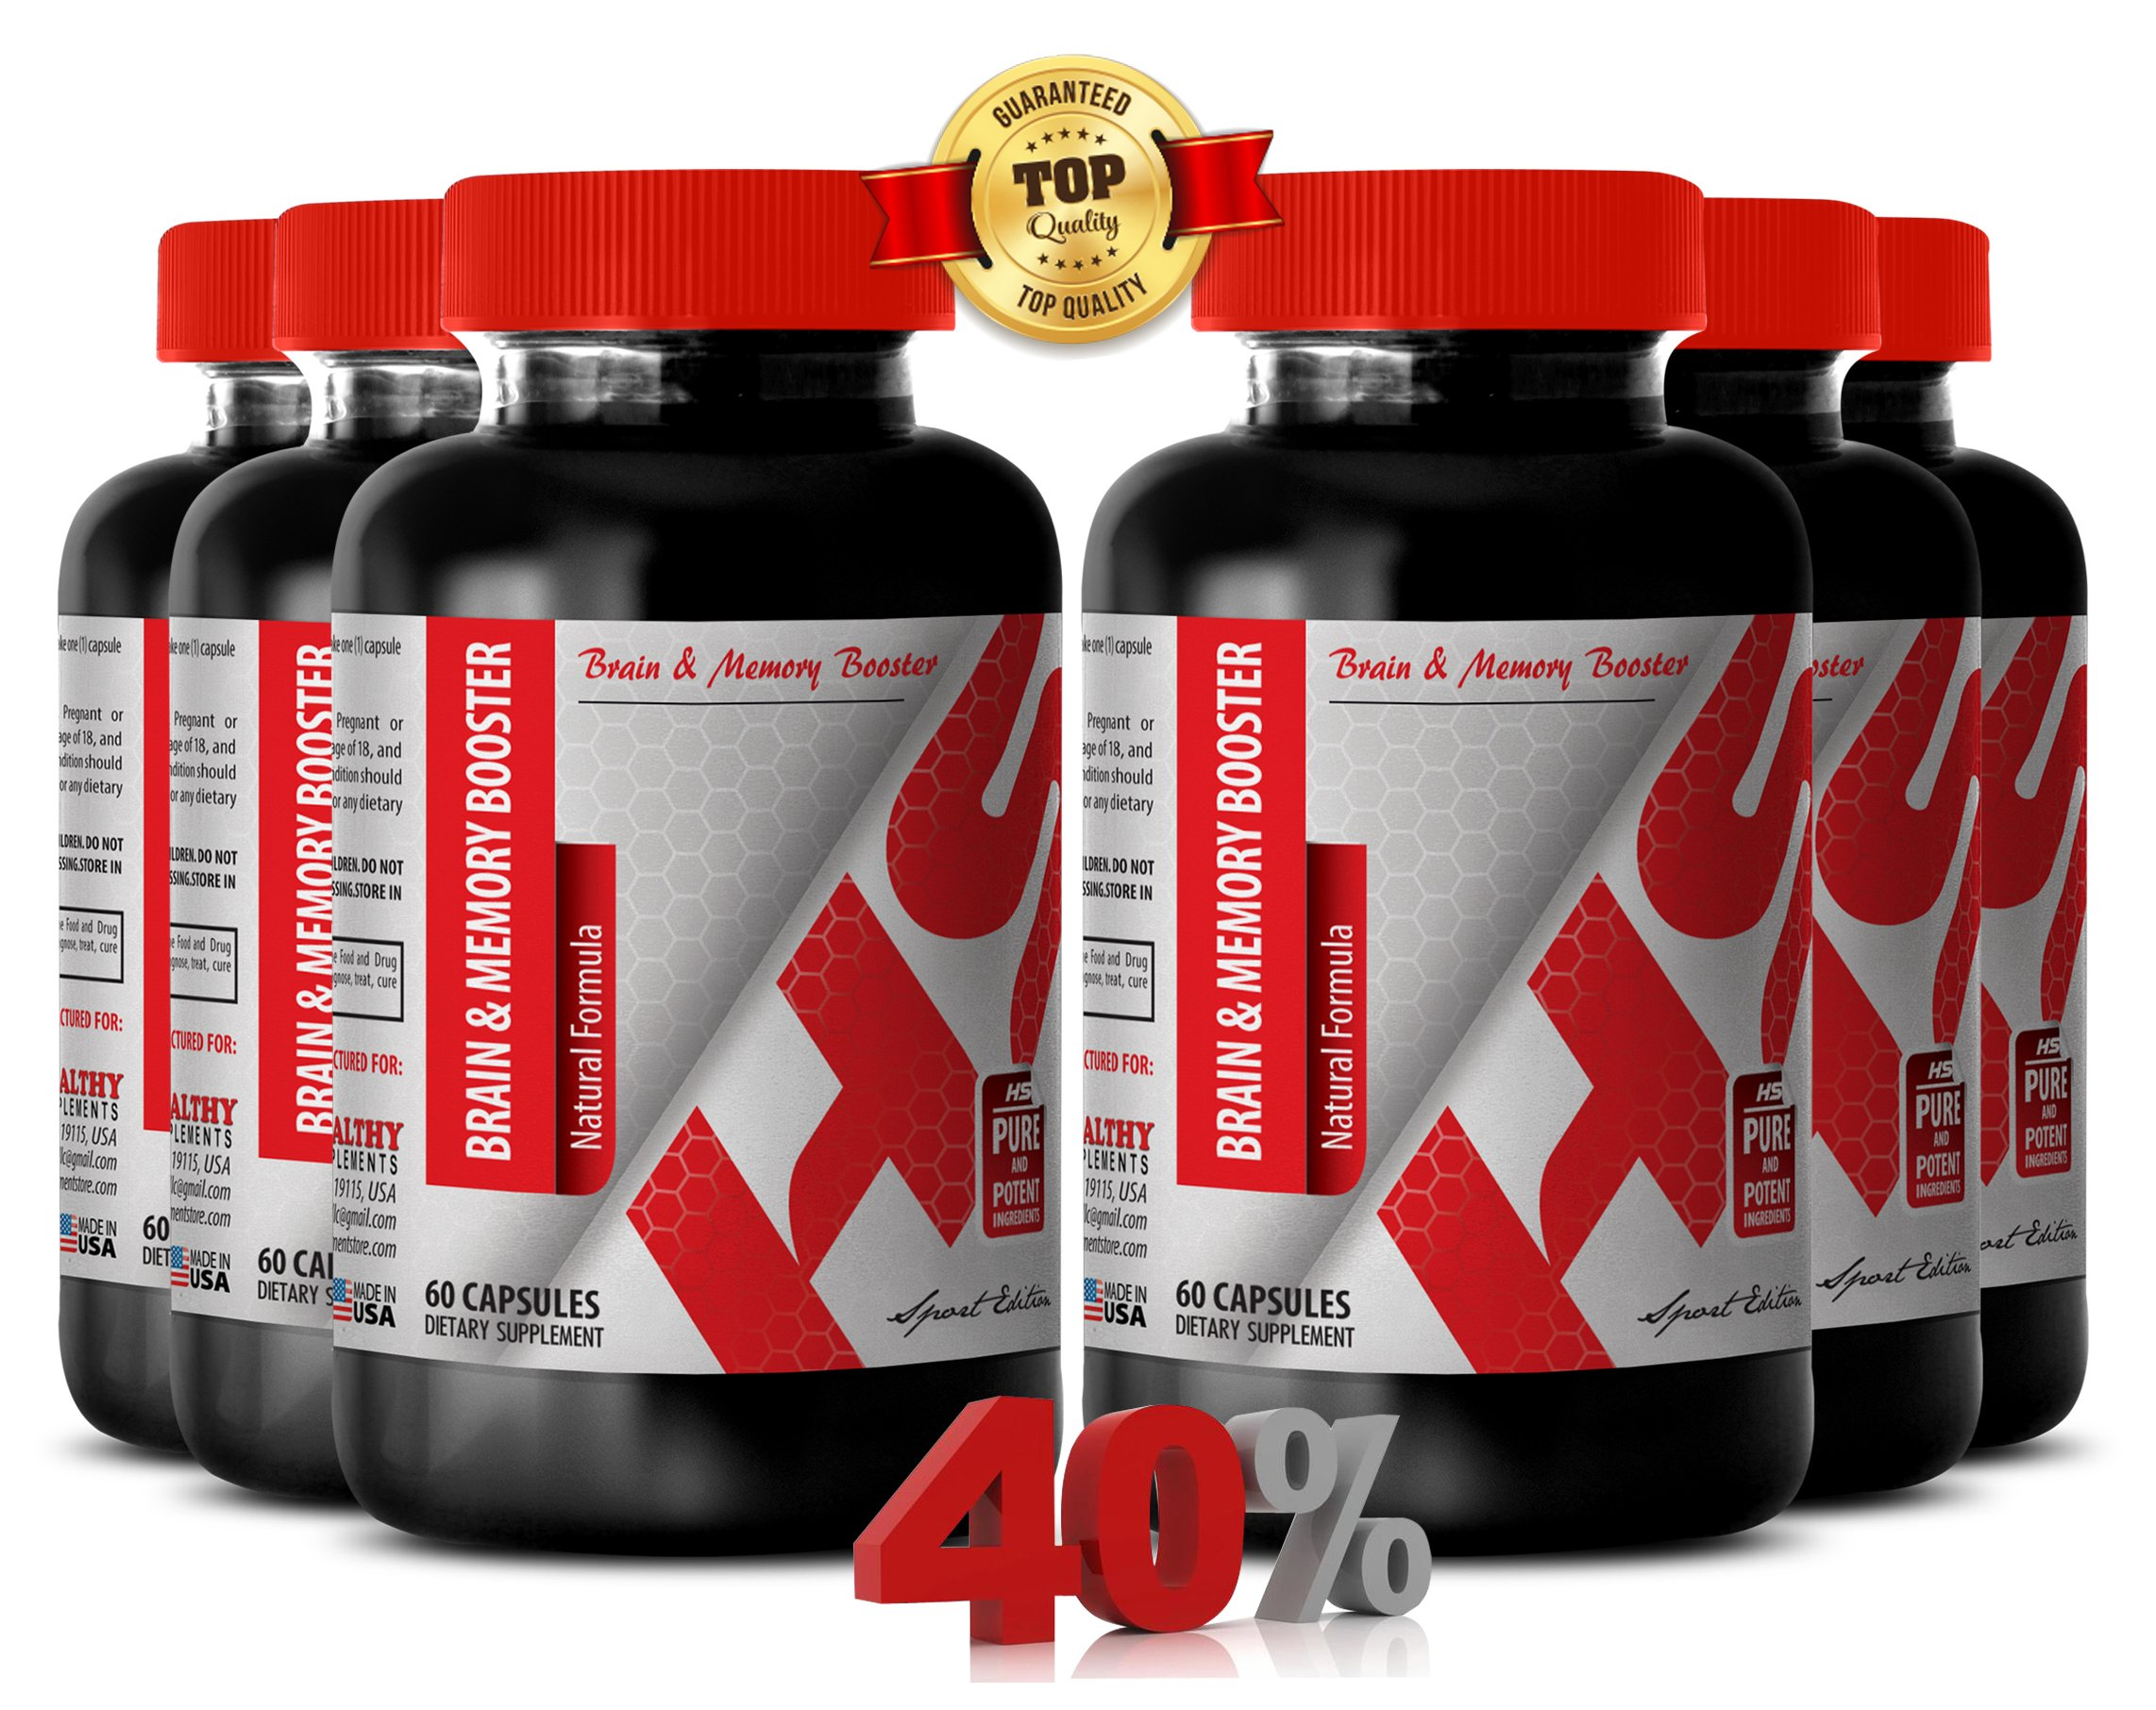 L carnitine powder supplement - BRAIN AND MEMORY BOOSTER NATURAL FORMULA - support circulation (6 Bottles)